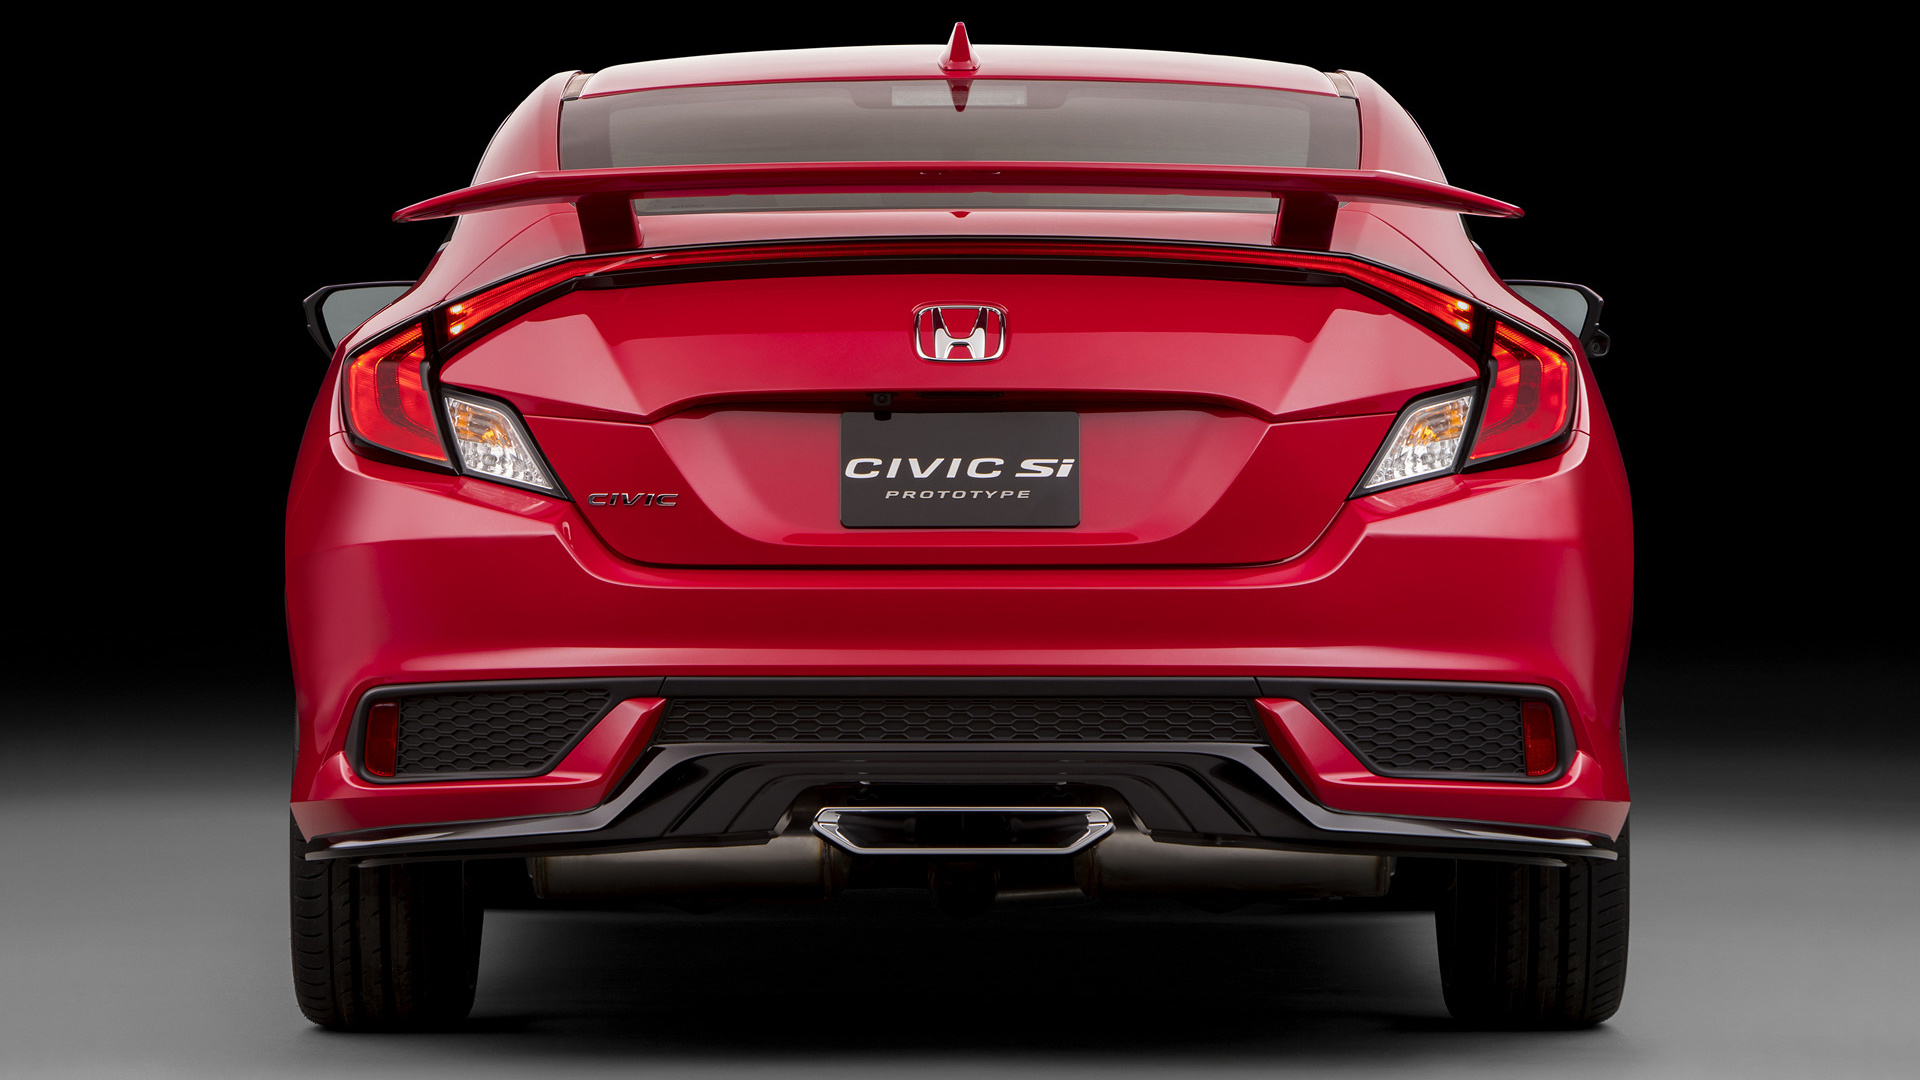 Honda Civic Si Prototype 2016 Wallpapers And HD Images